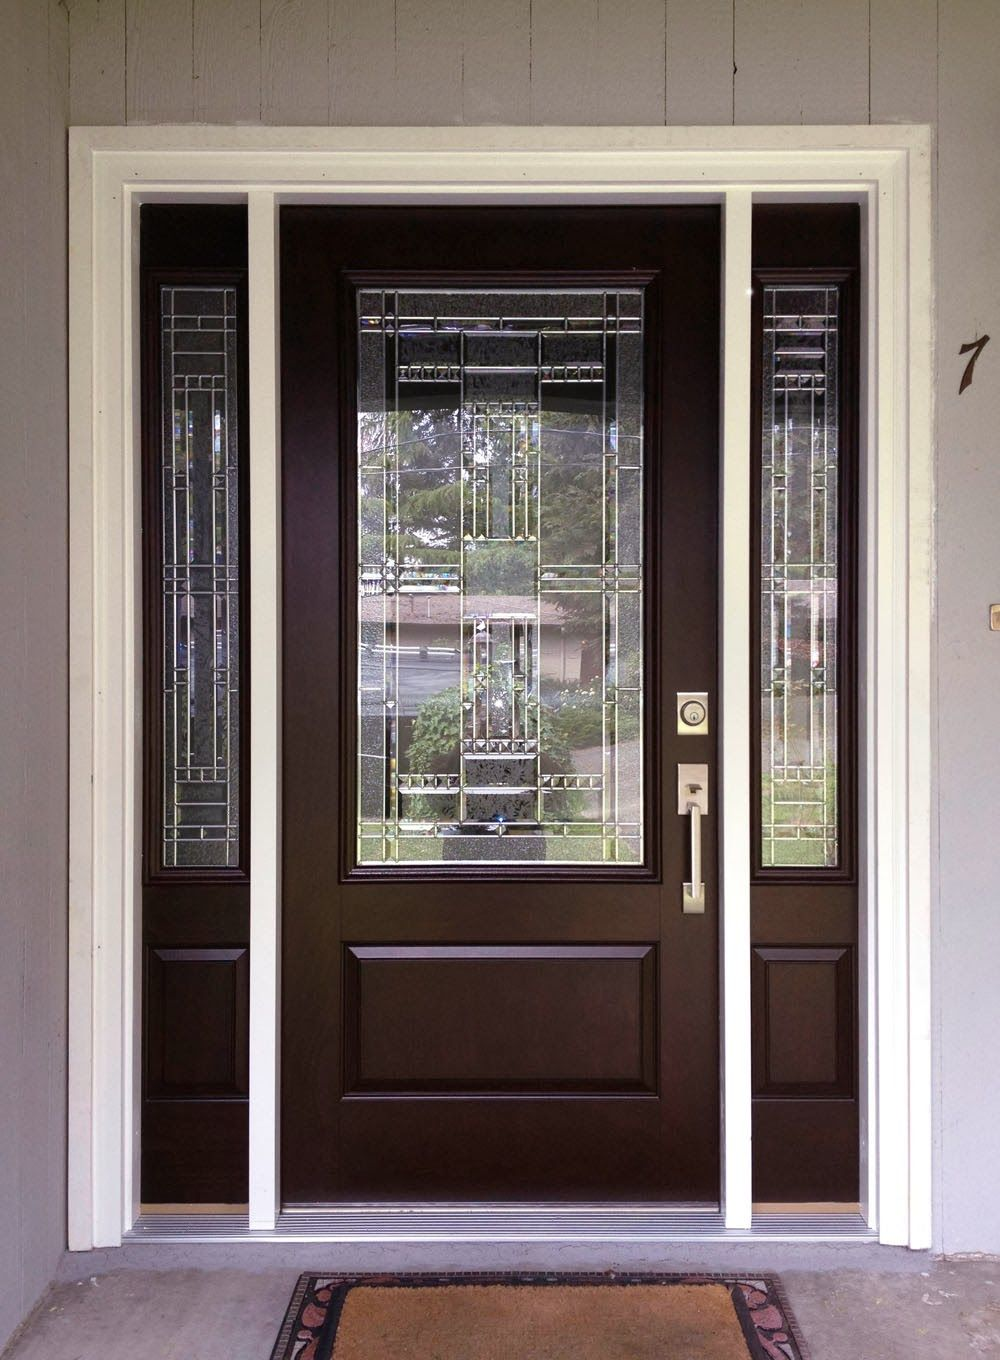 Feather River Doors Blog About Fiberglass Exterior Entry And Patio Doors And Interior Wood Doors Painted Front Doors Front Door Entrance Exterior Front Doors